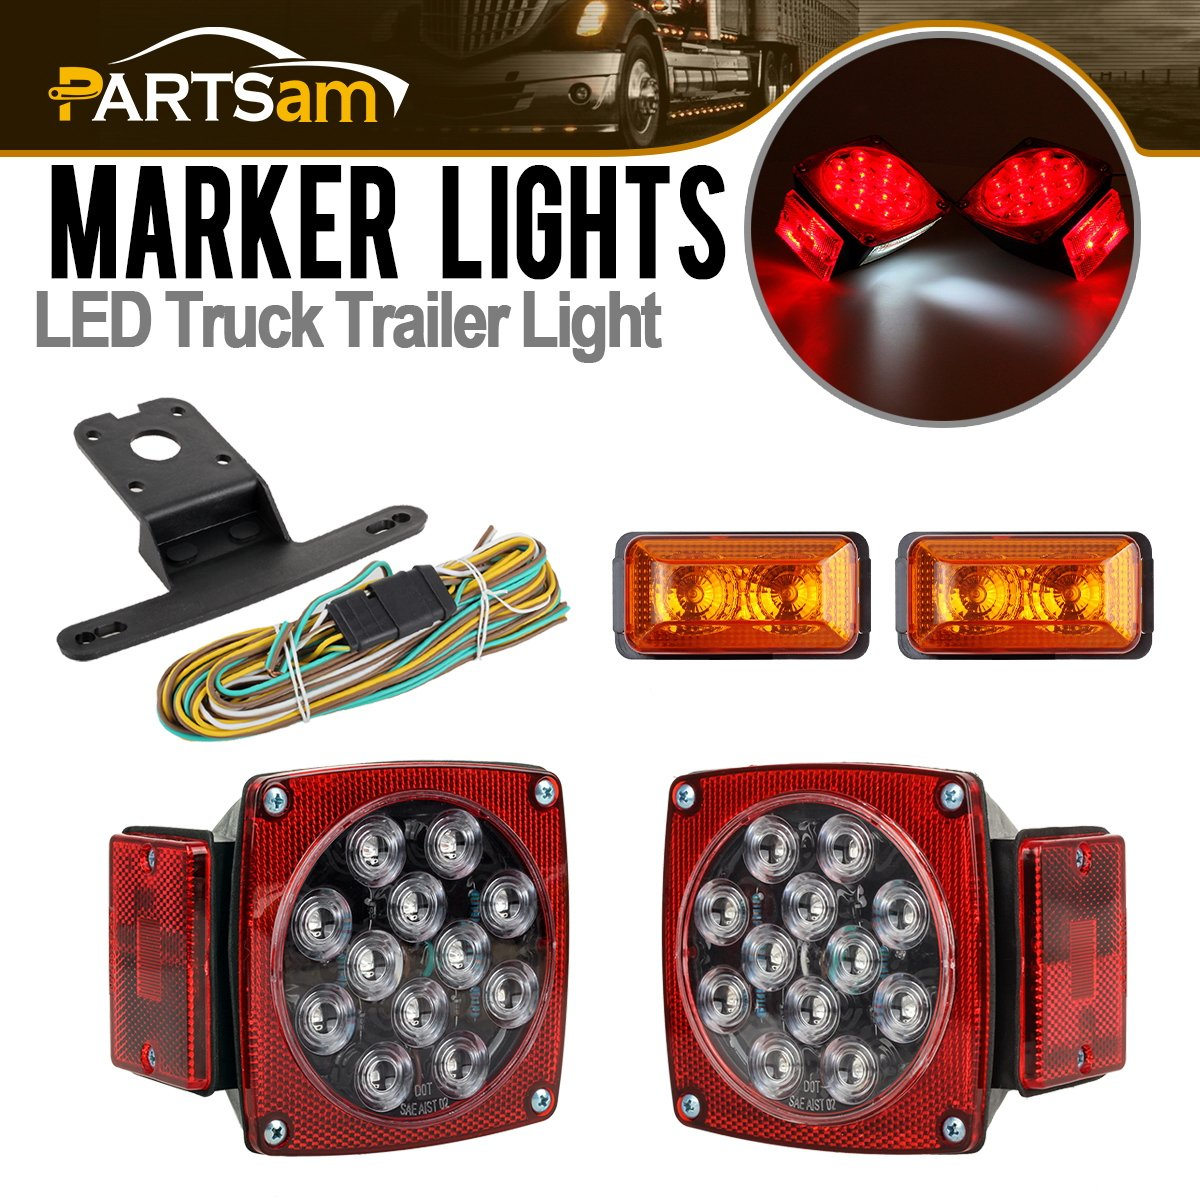 Partsam Led Light Kit Trailer Truck Tail Turn Stop Boat Wiring Diagram Dot Amber Side Marker W Wire Harness Total Of 4pcs Automotive